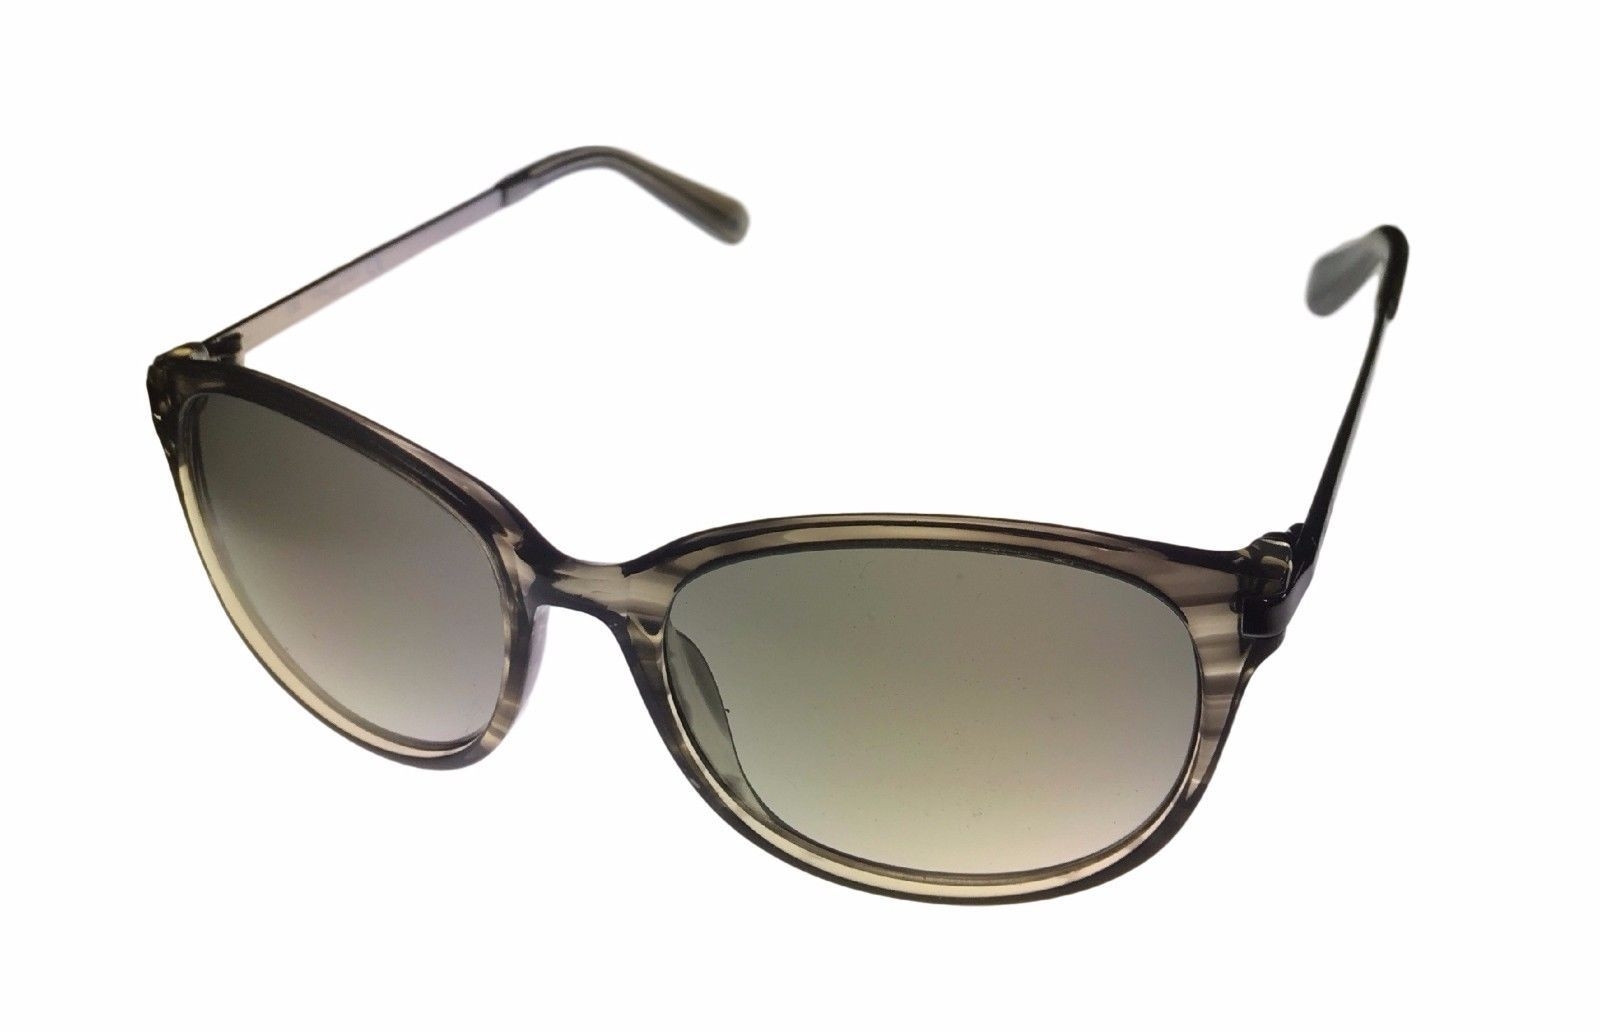 Kenneth Cole New York Mens Sunglass Soft Round Black, Smoke Lens KC7006 98F image 1